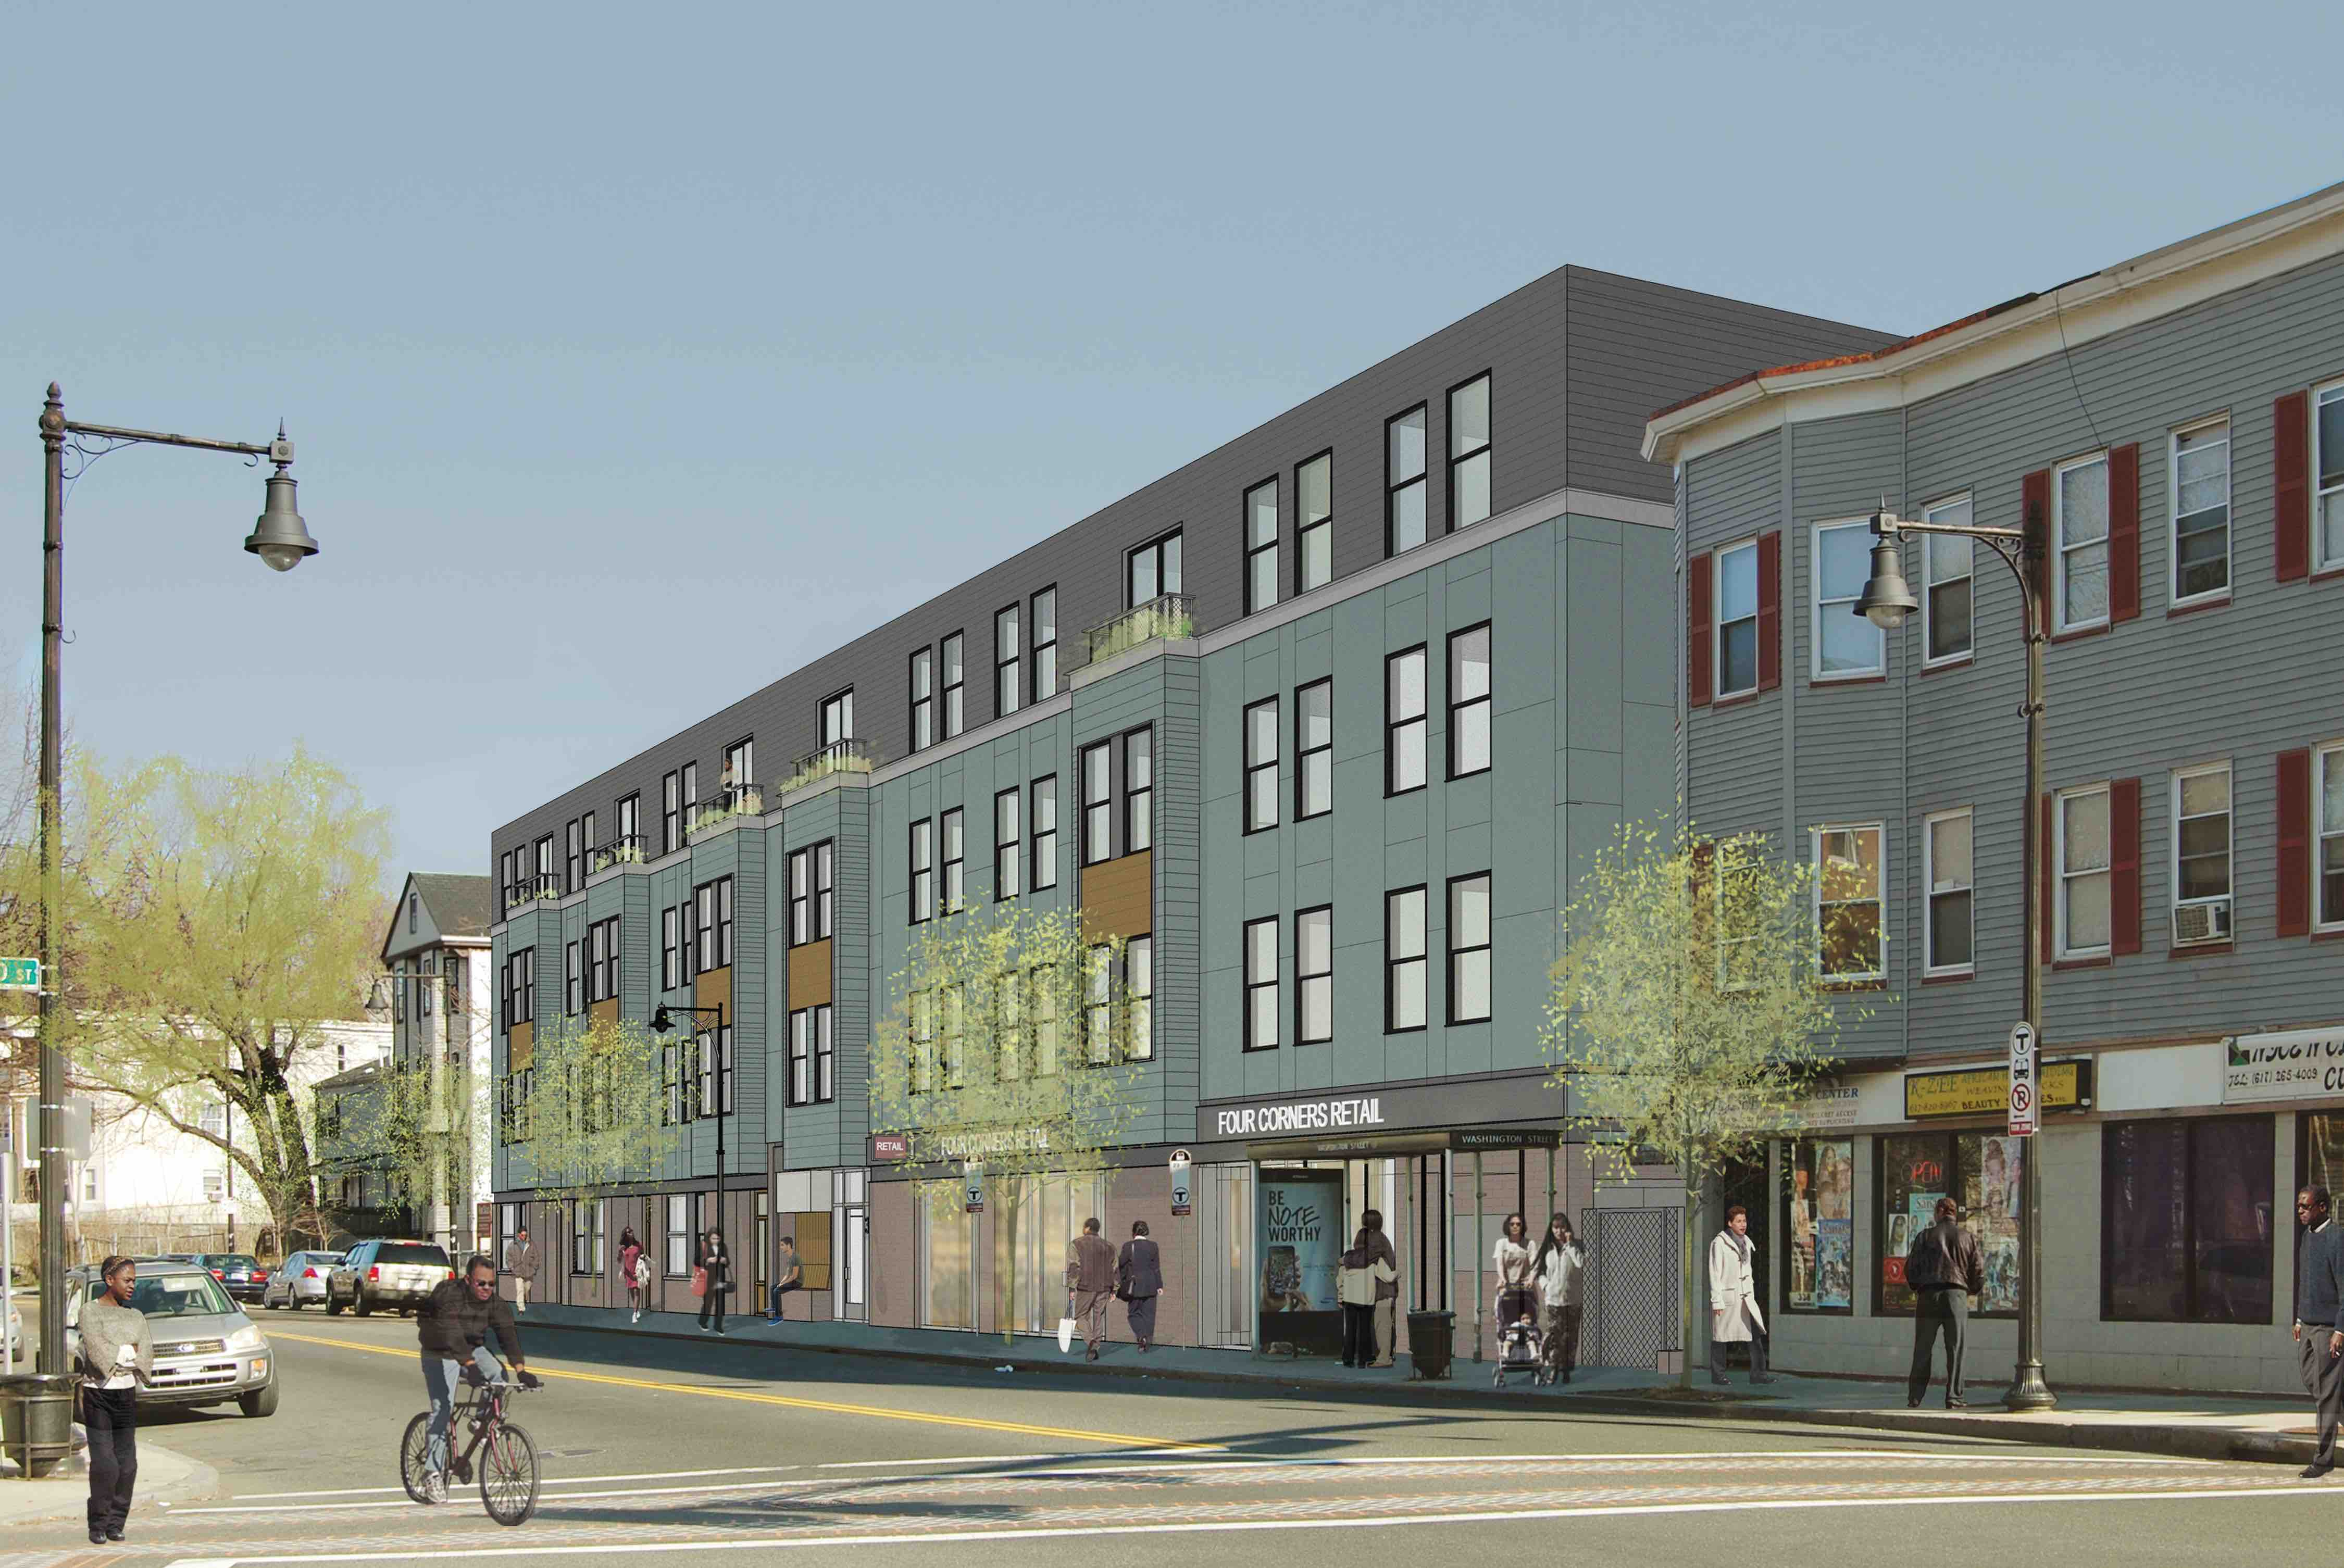 Upper washington mixed use affordable housing retail development vietaid utile four corners dorchester boston